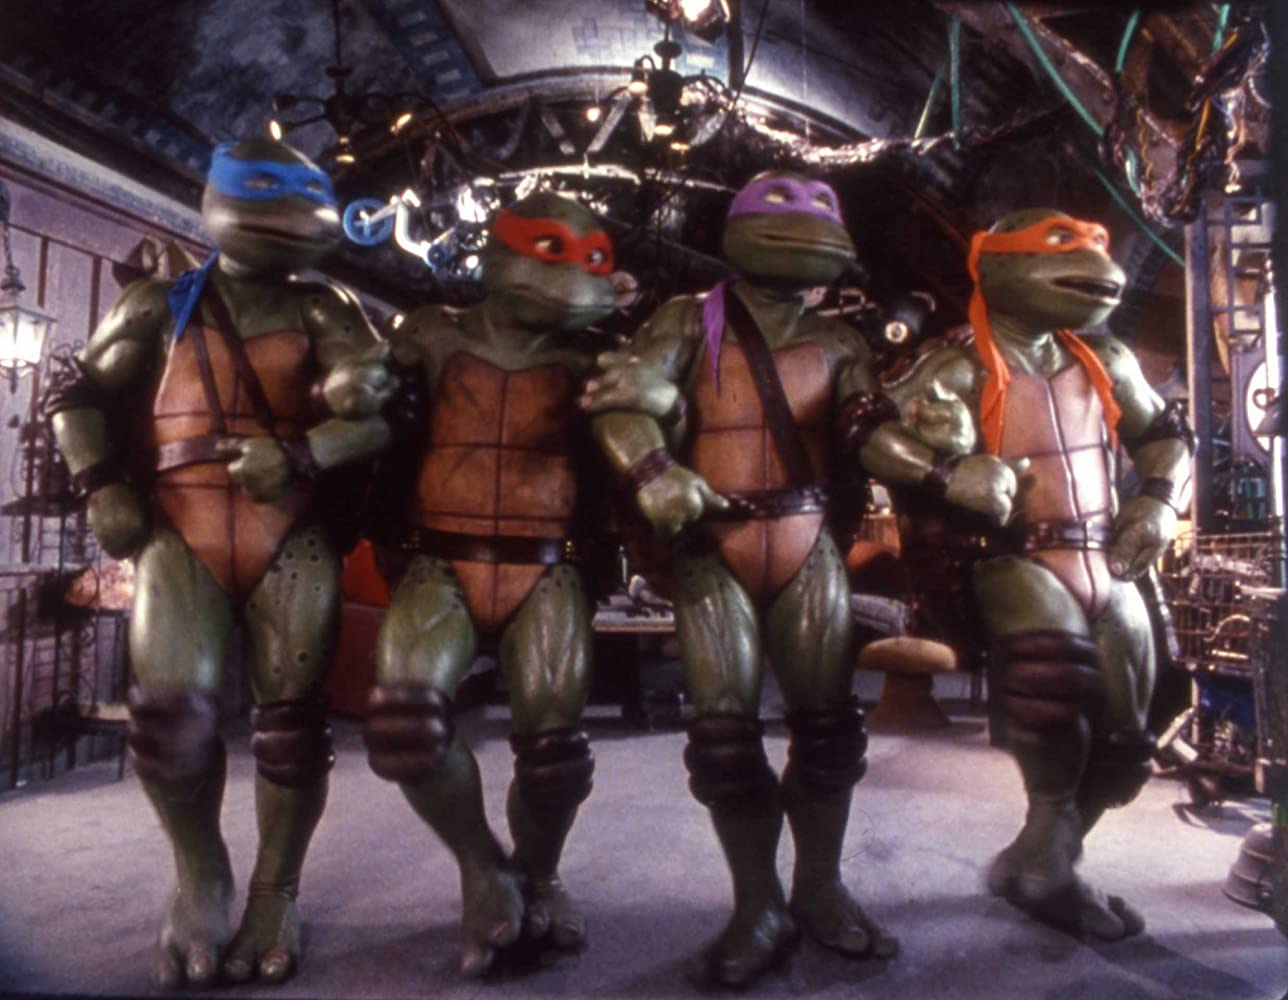 Mark Caso, David Fraser, Matt Hill, and Jim Raposa in Teenage Mutant Ninja Turtles III (1993)